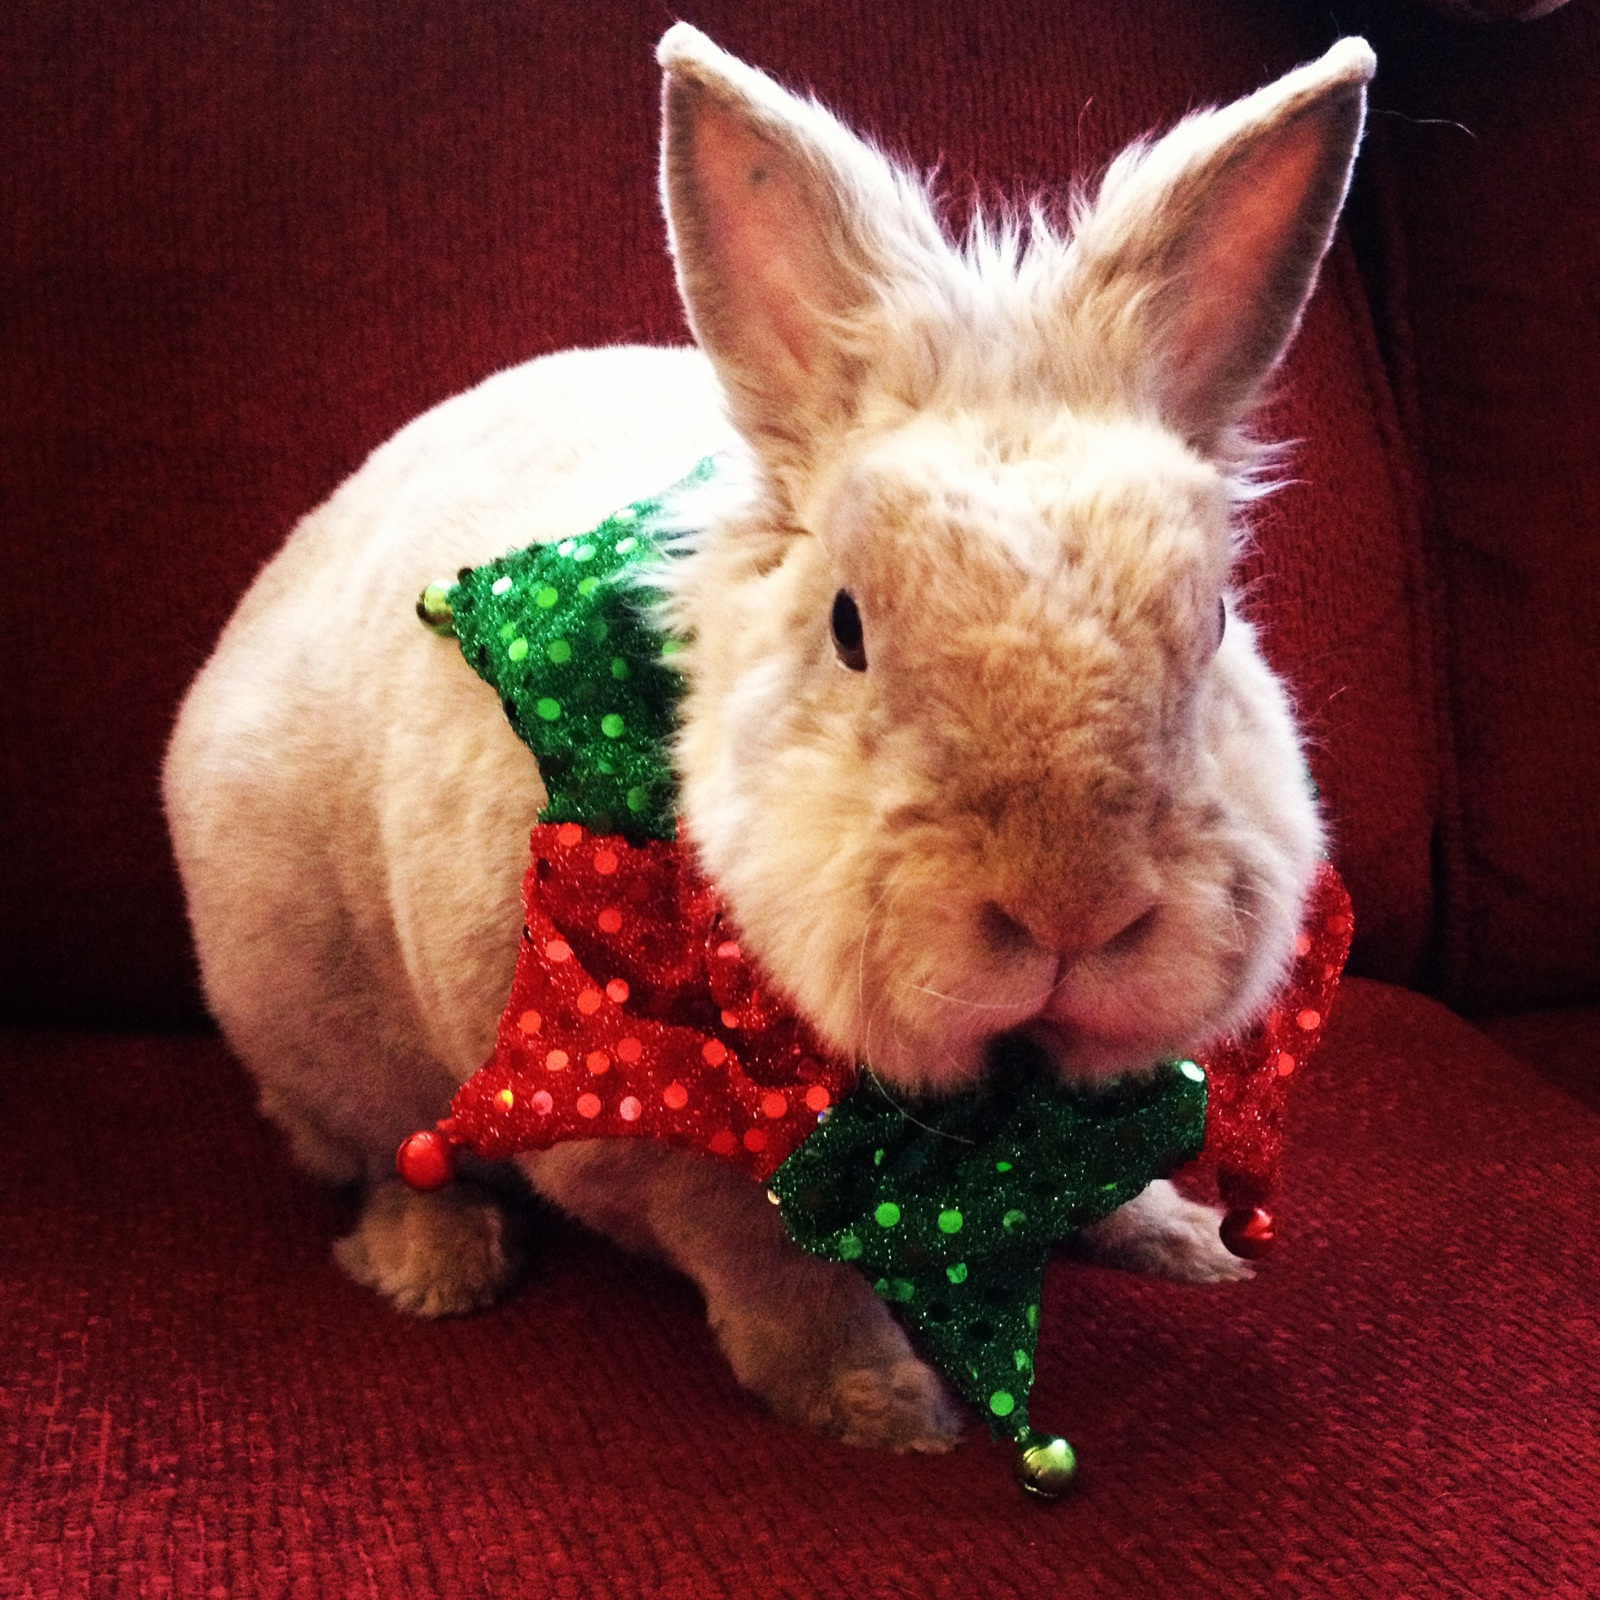 The Daily Bunny's Christmas 2013 Mega-Post 7